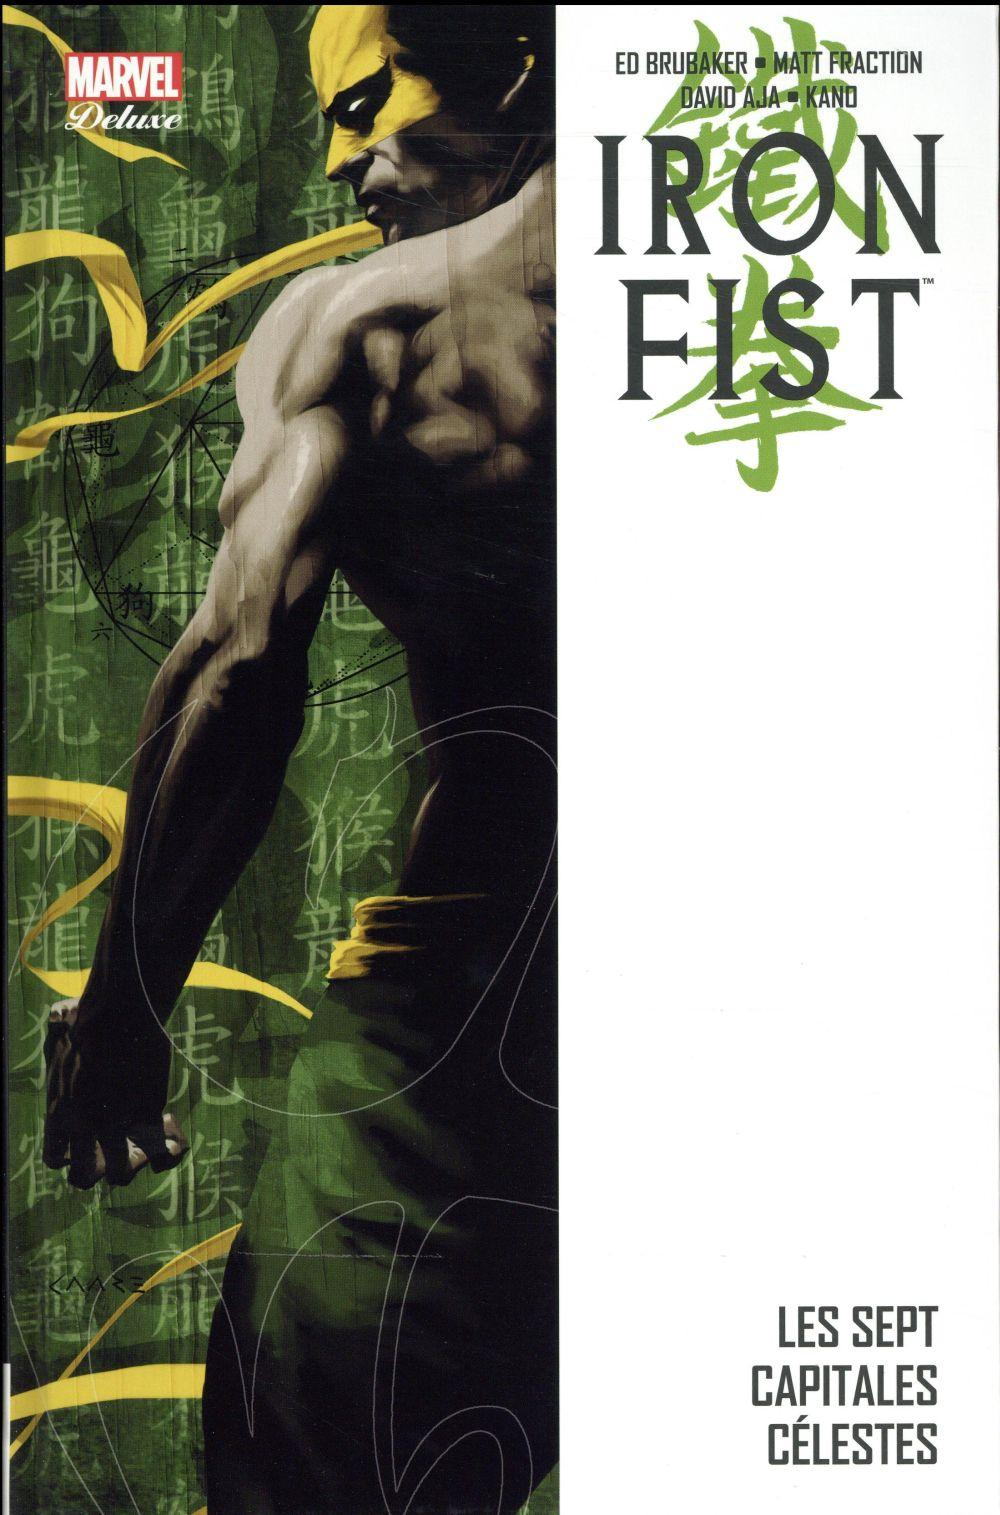 Vente Livre :                                    Iron Fist T.2 ; les sept Capitales Célestes                                      - Ed Brubaker  - Matt Fraction  - David Aja